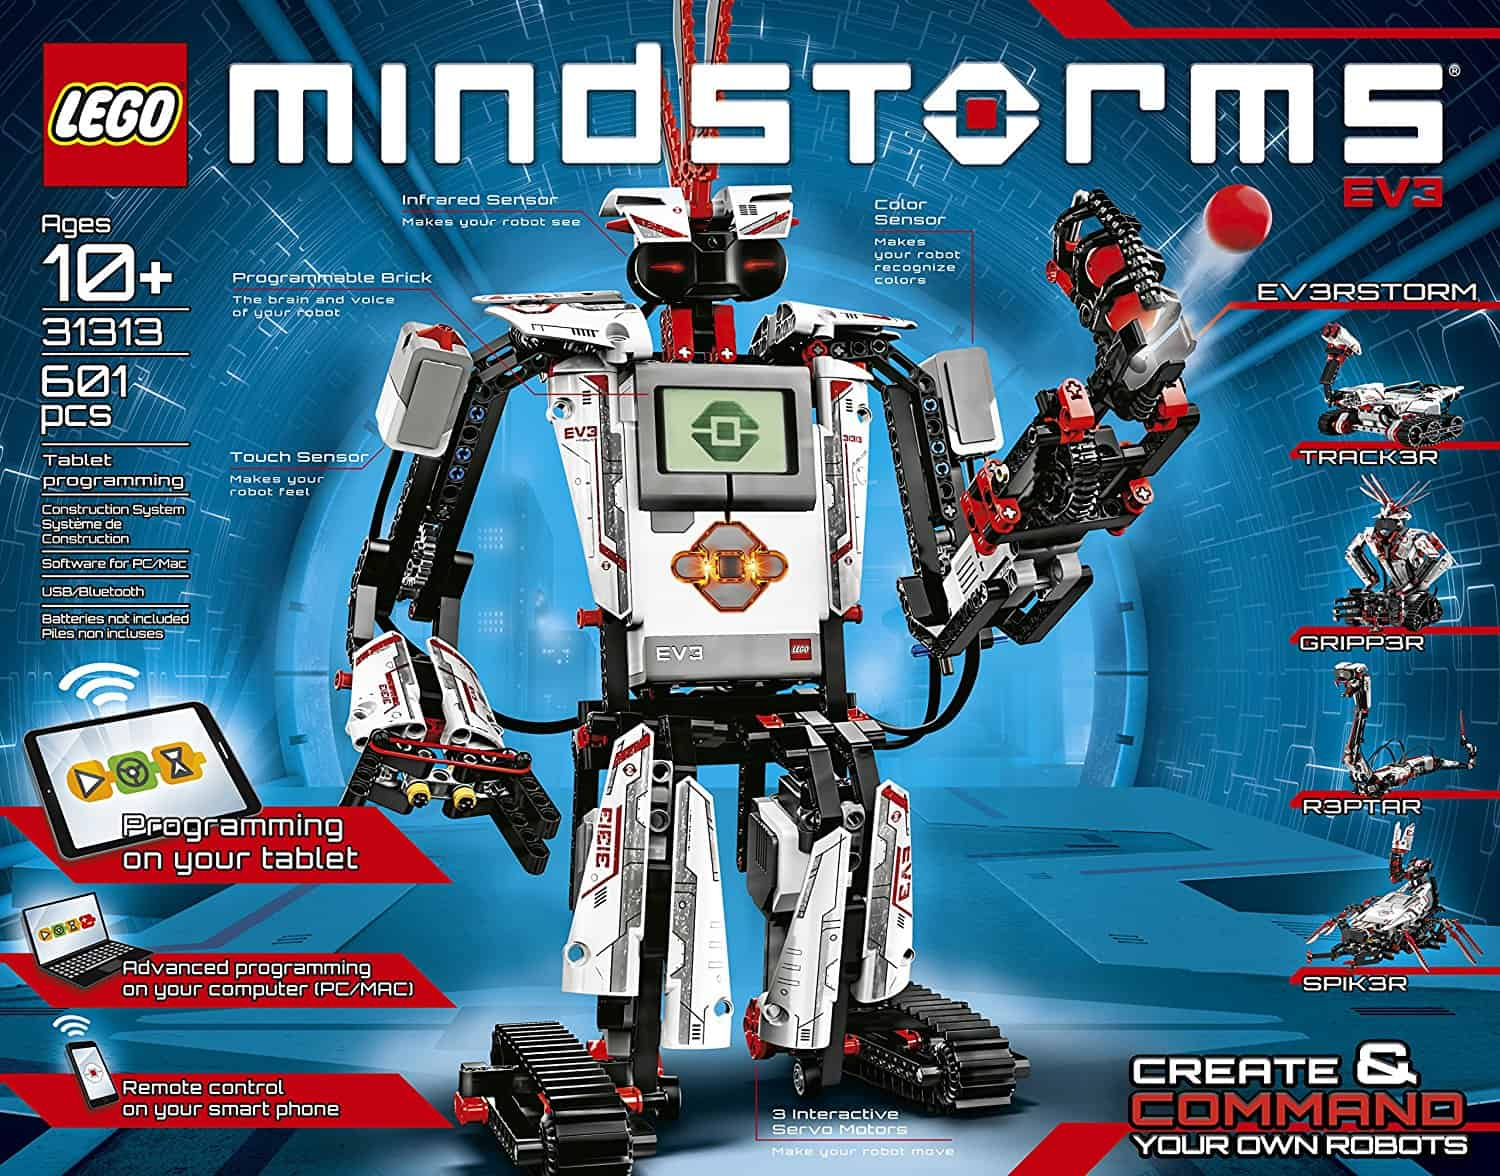 Mindstorms is the best stem toy for teens in 2018 for adults learning to code and robotics